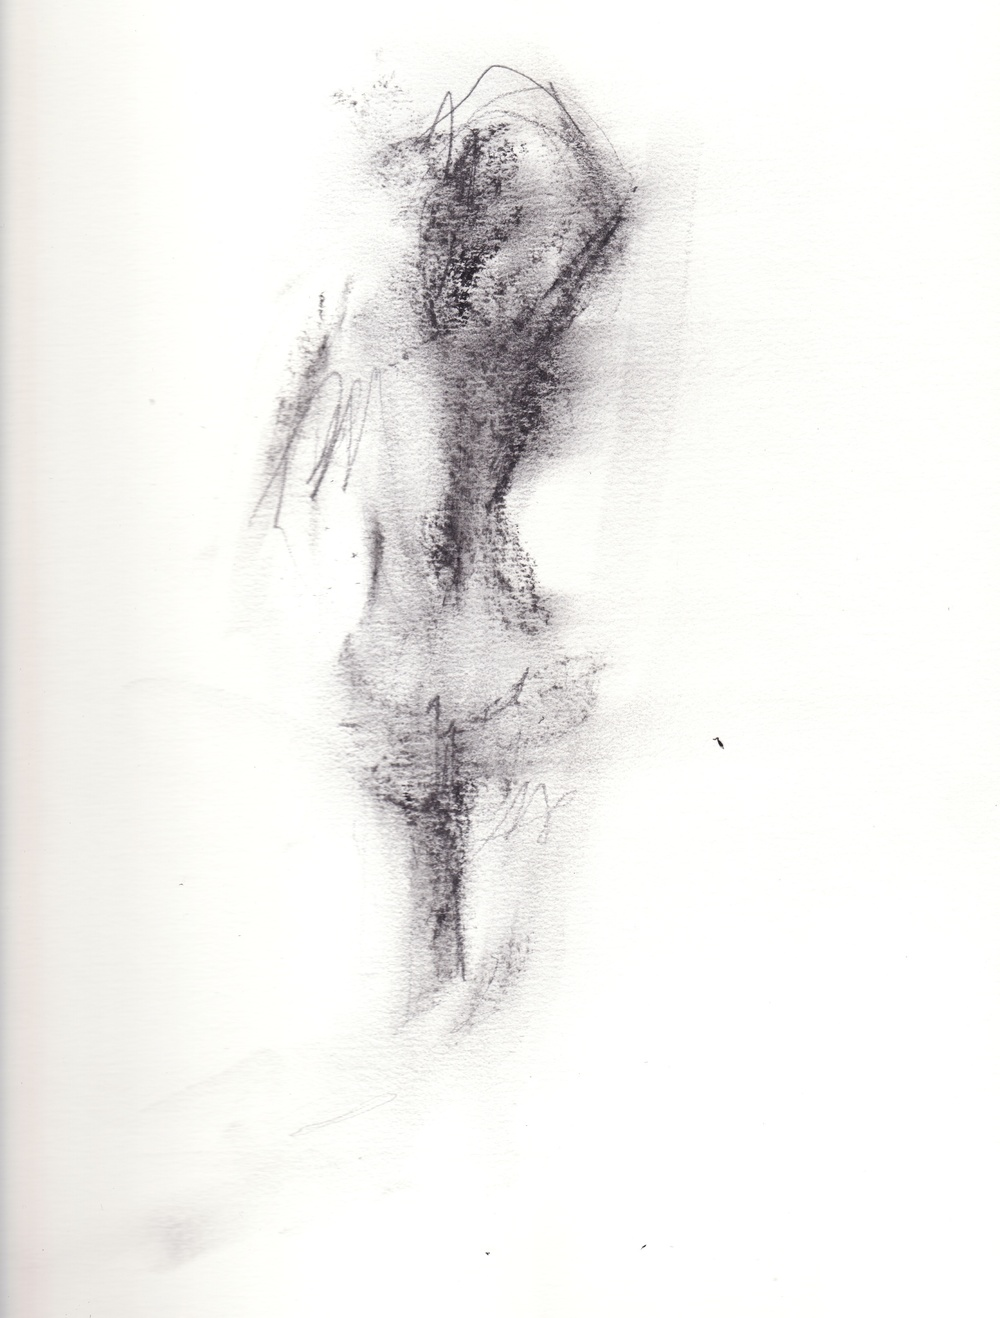 life drawing / charcoal / winter 2008